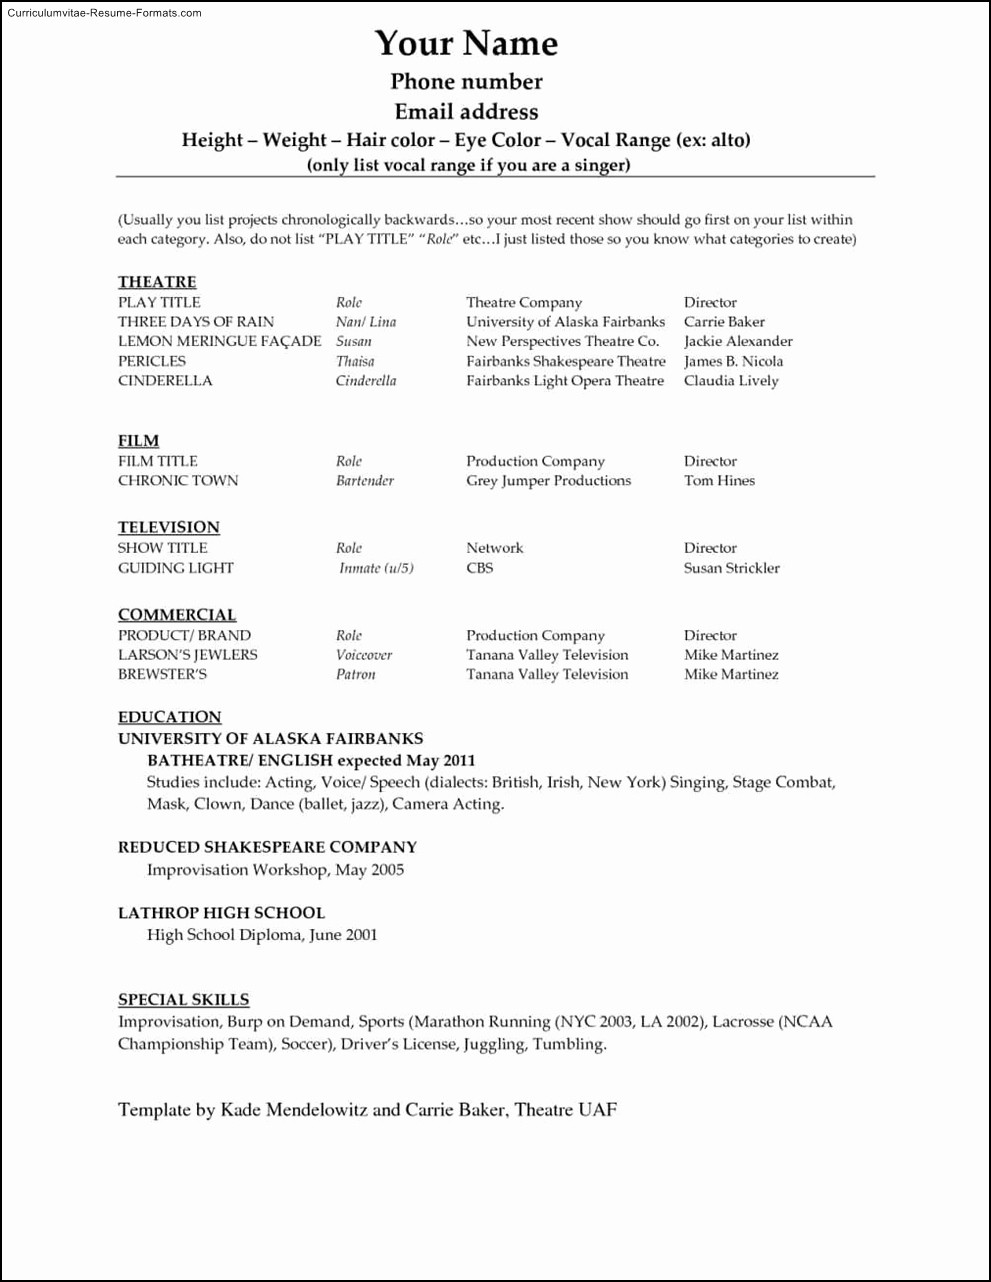 Ms Office Word Resume Templates Lovely Microsoft Word 2010 Resume Template Free Samples